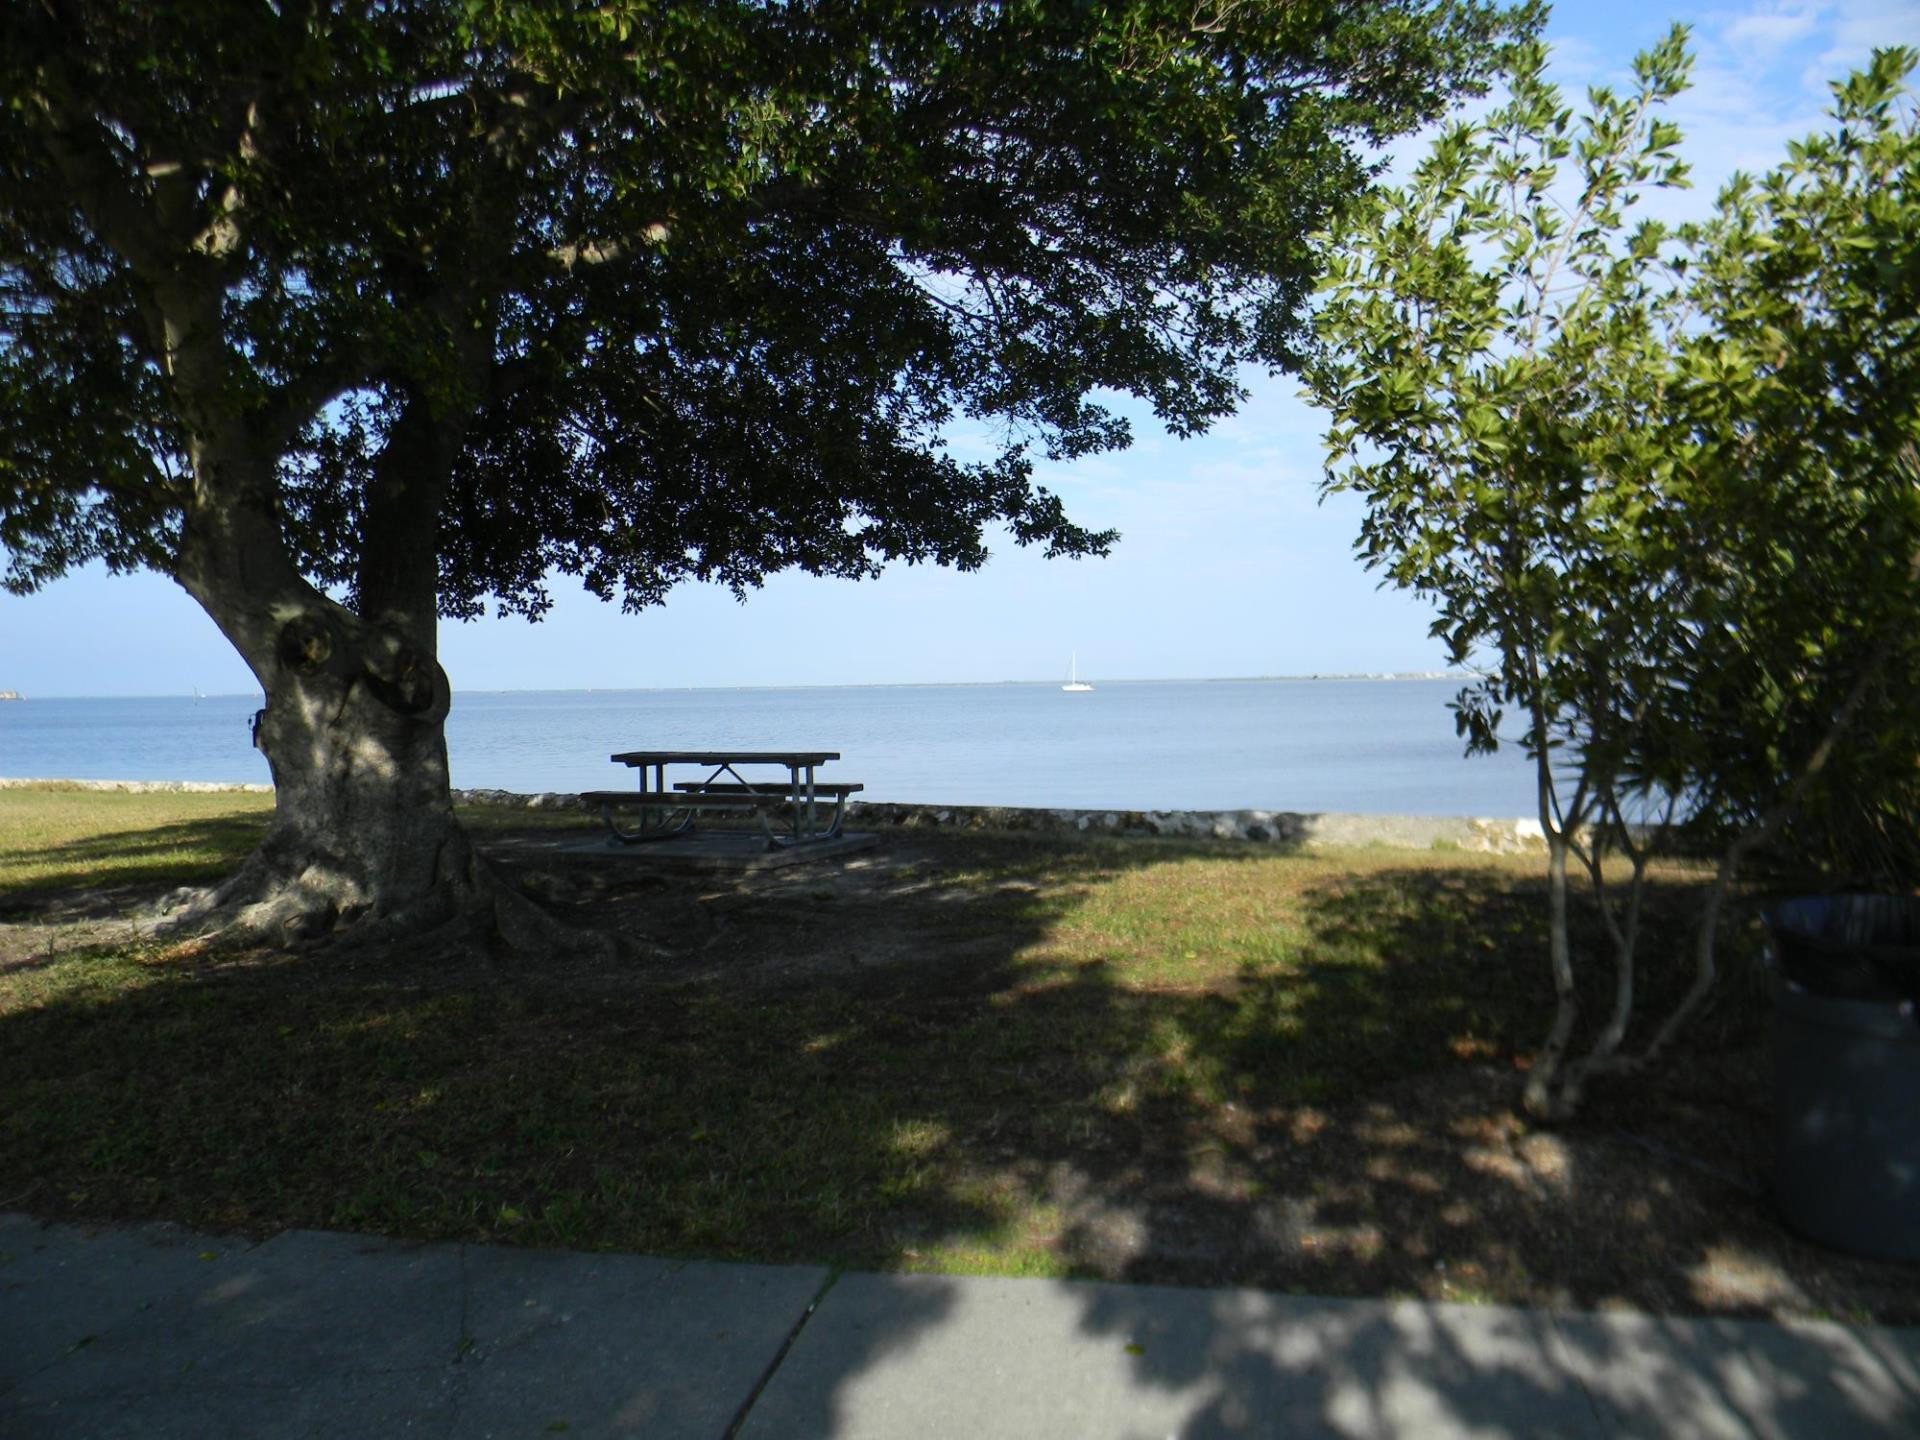 Photo of Tree, picnic table along harbor at Gilchrest Park.